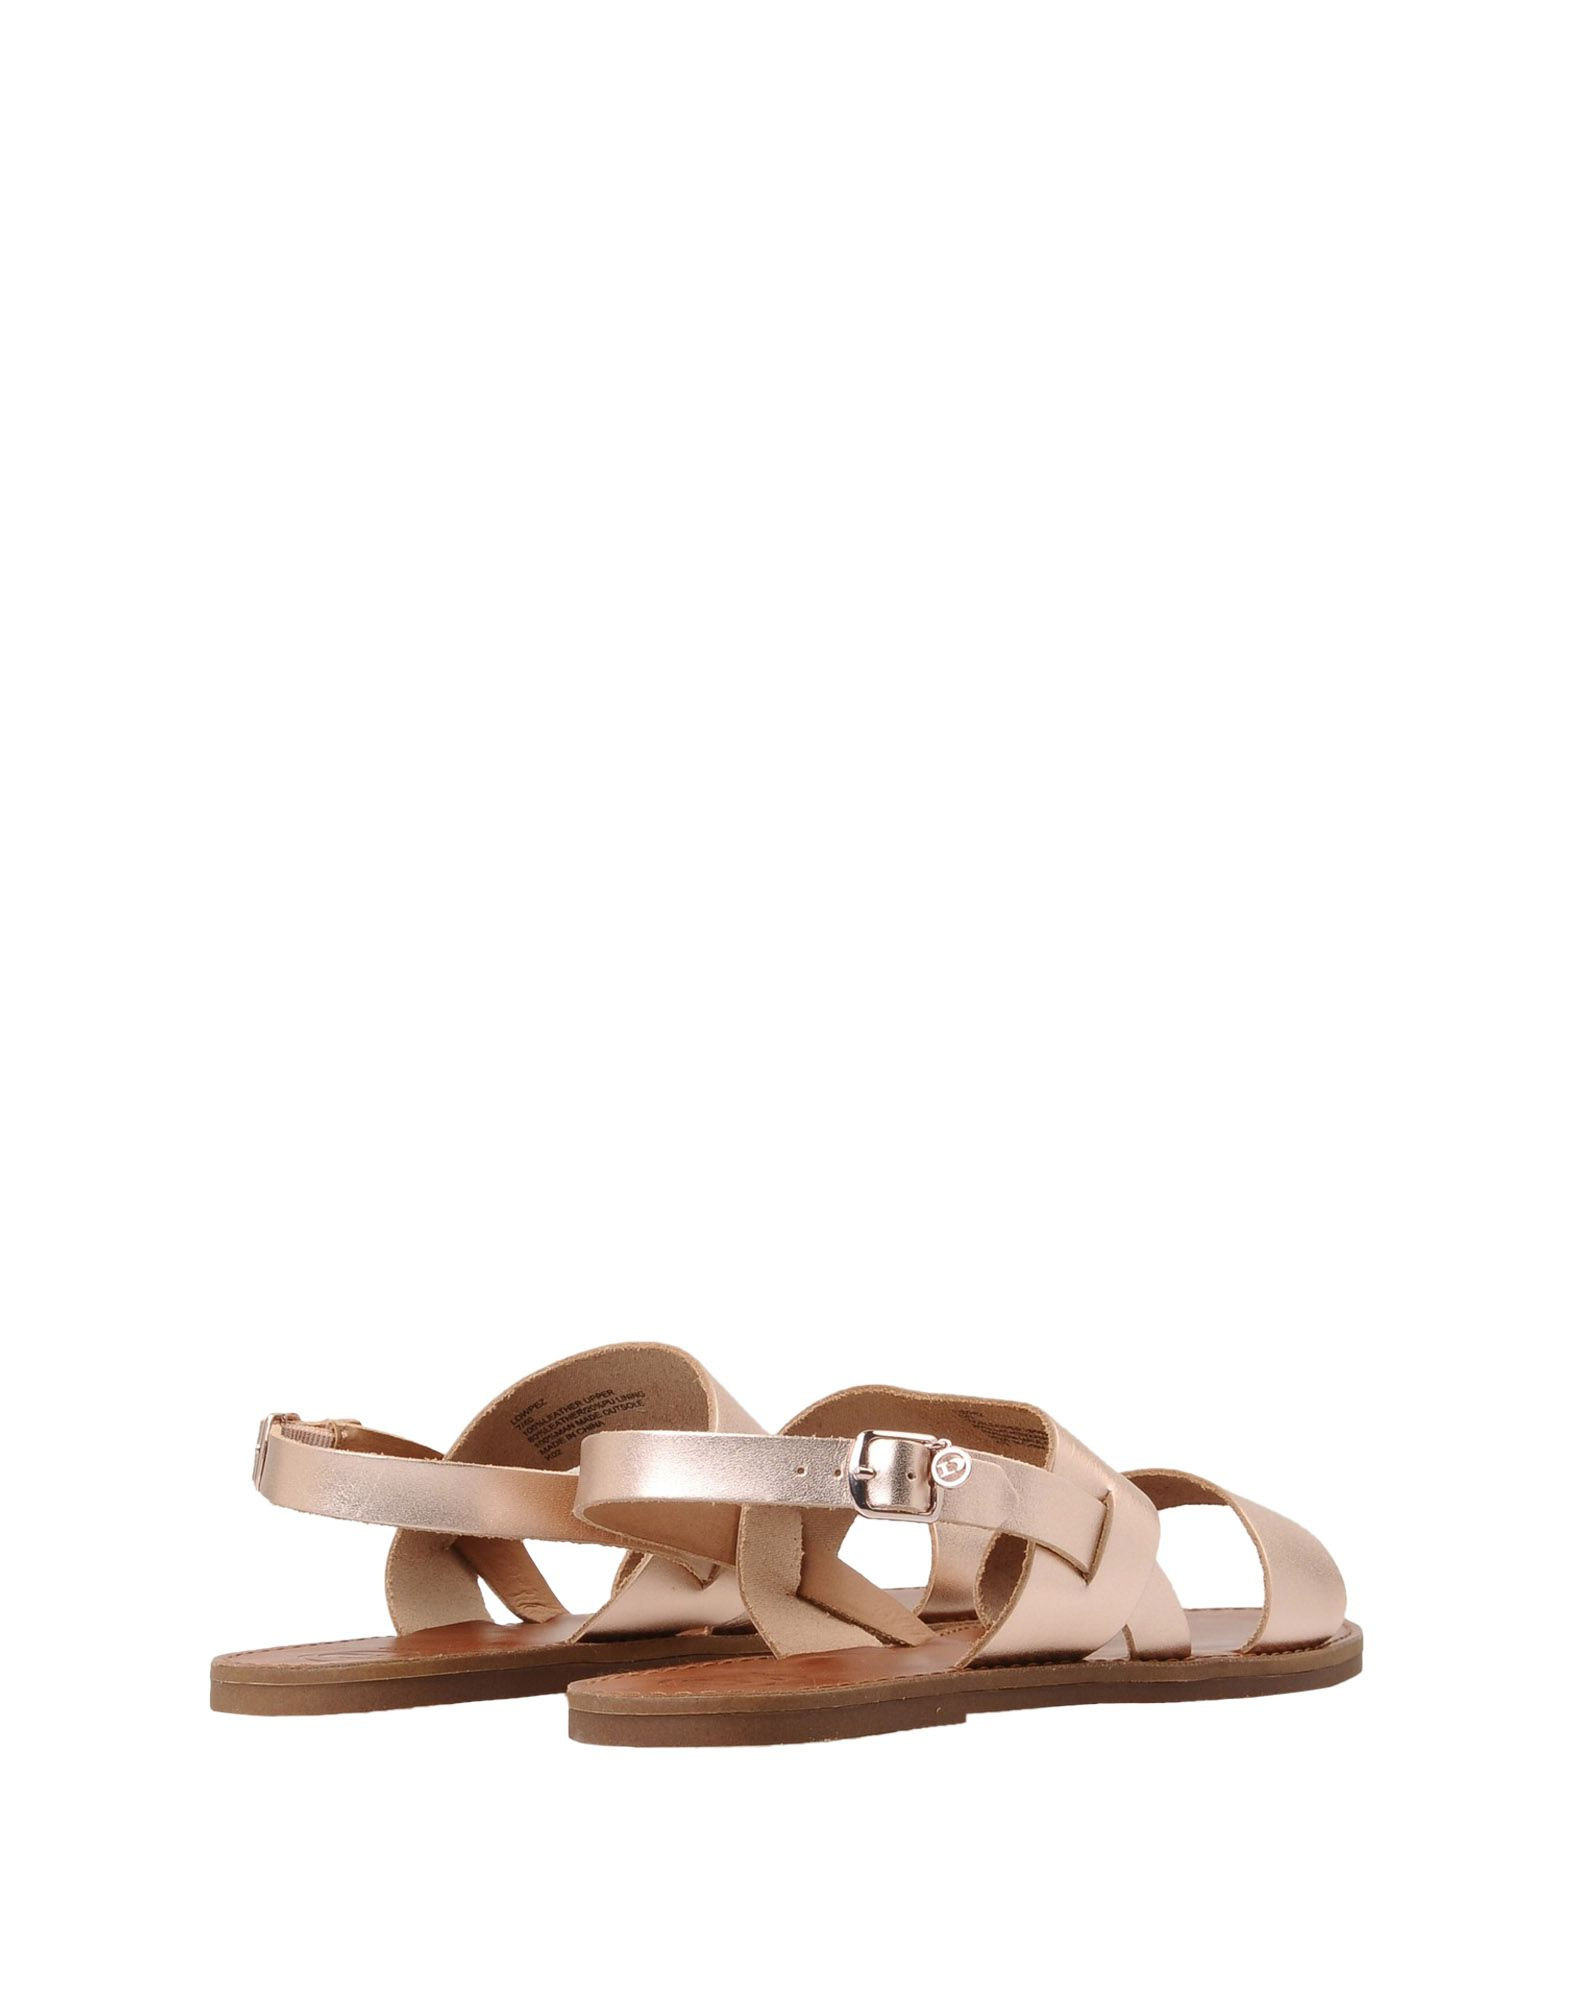 Sandales Dune London Lowpez - Femme - Sandales Dune London sur